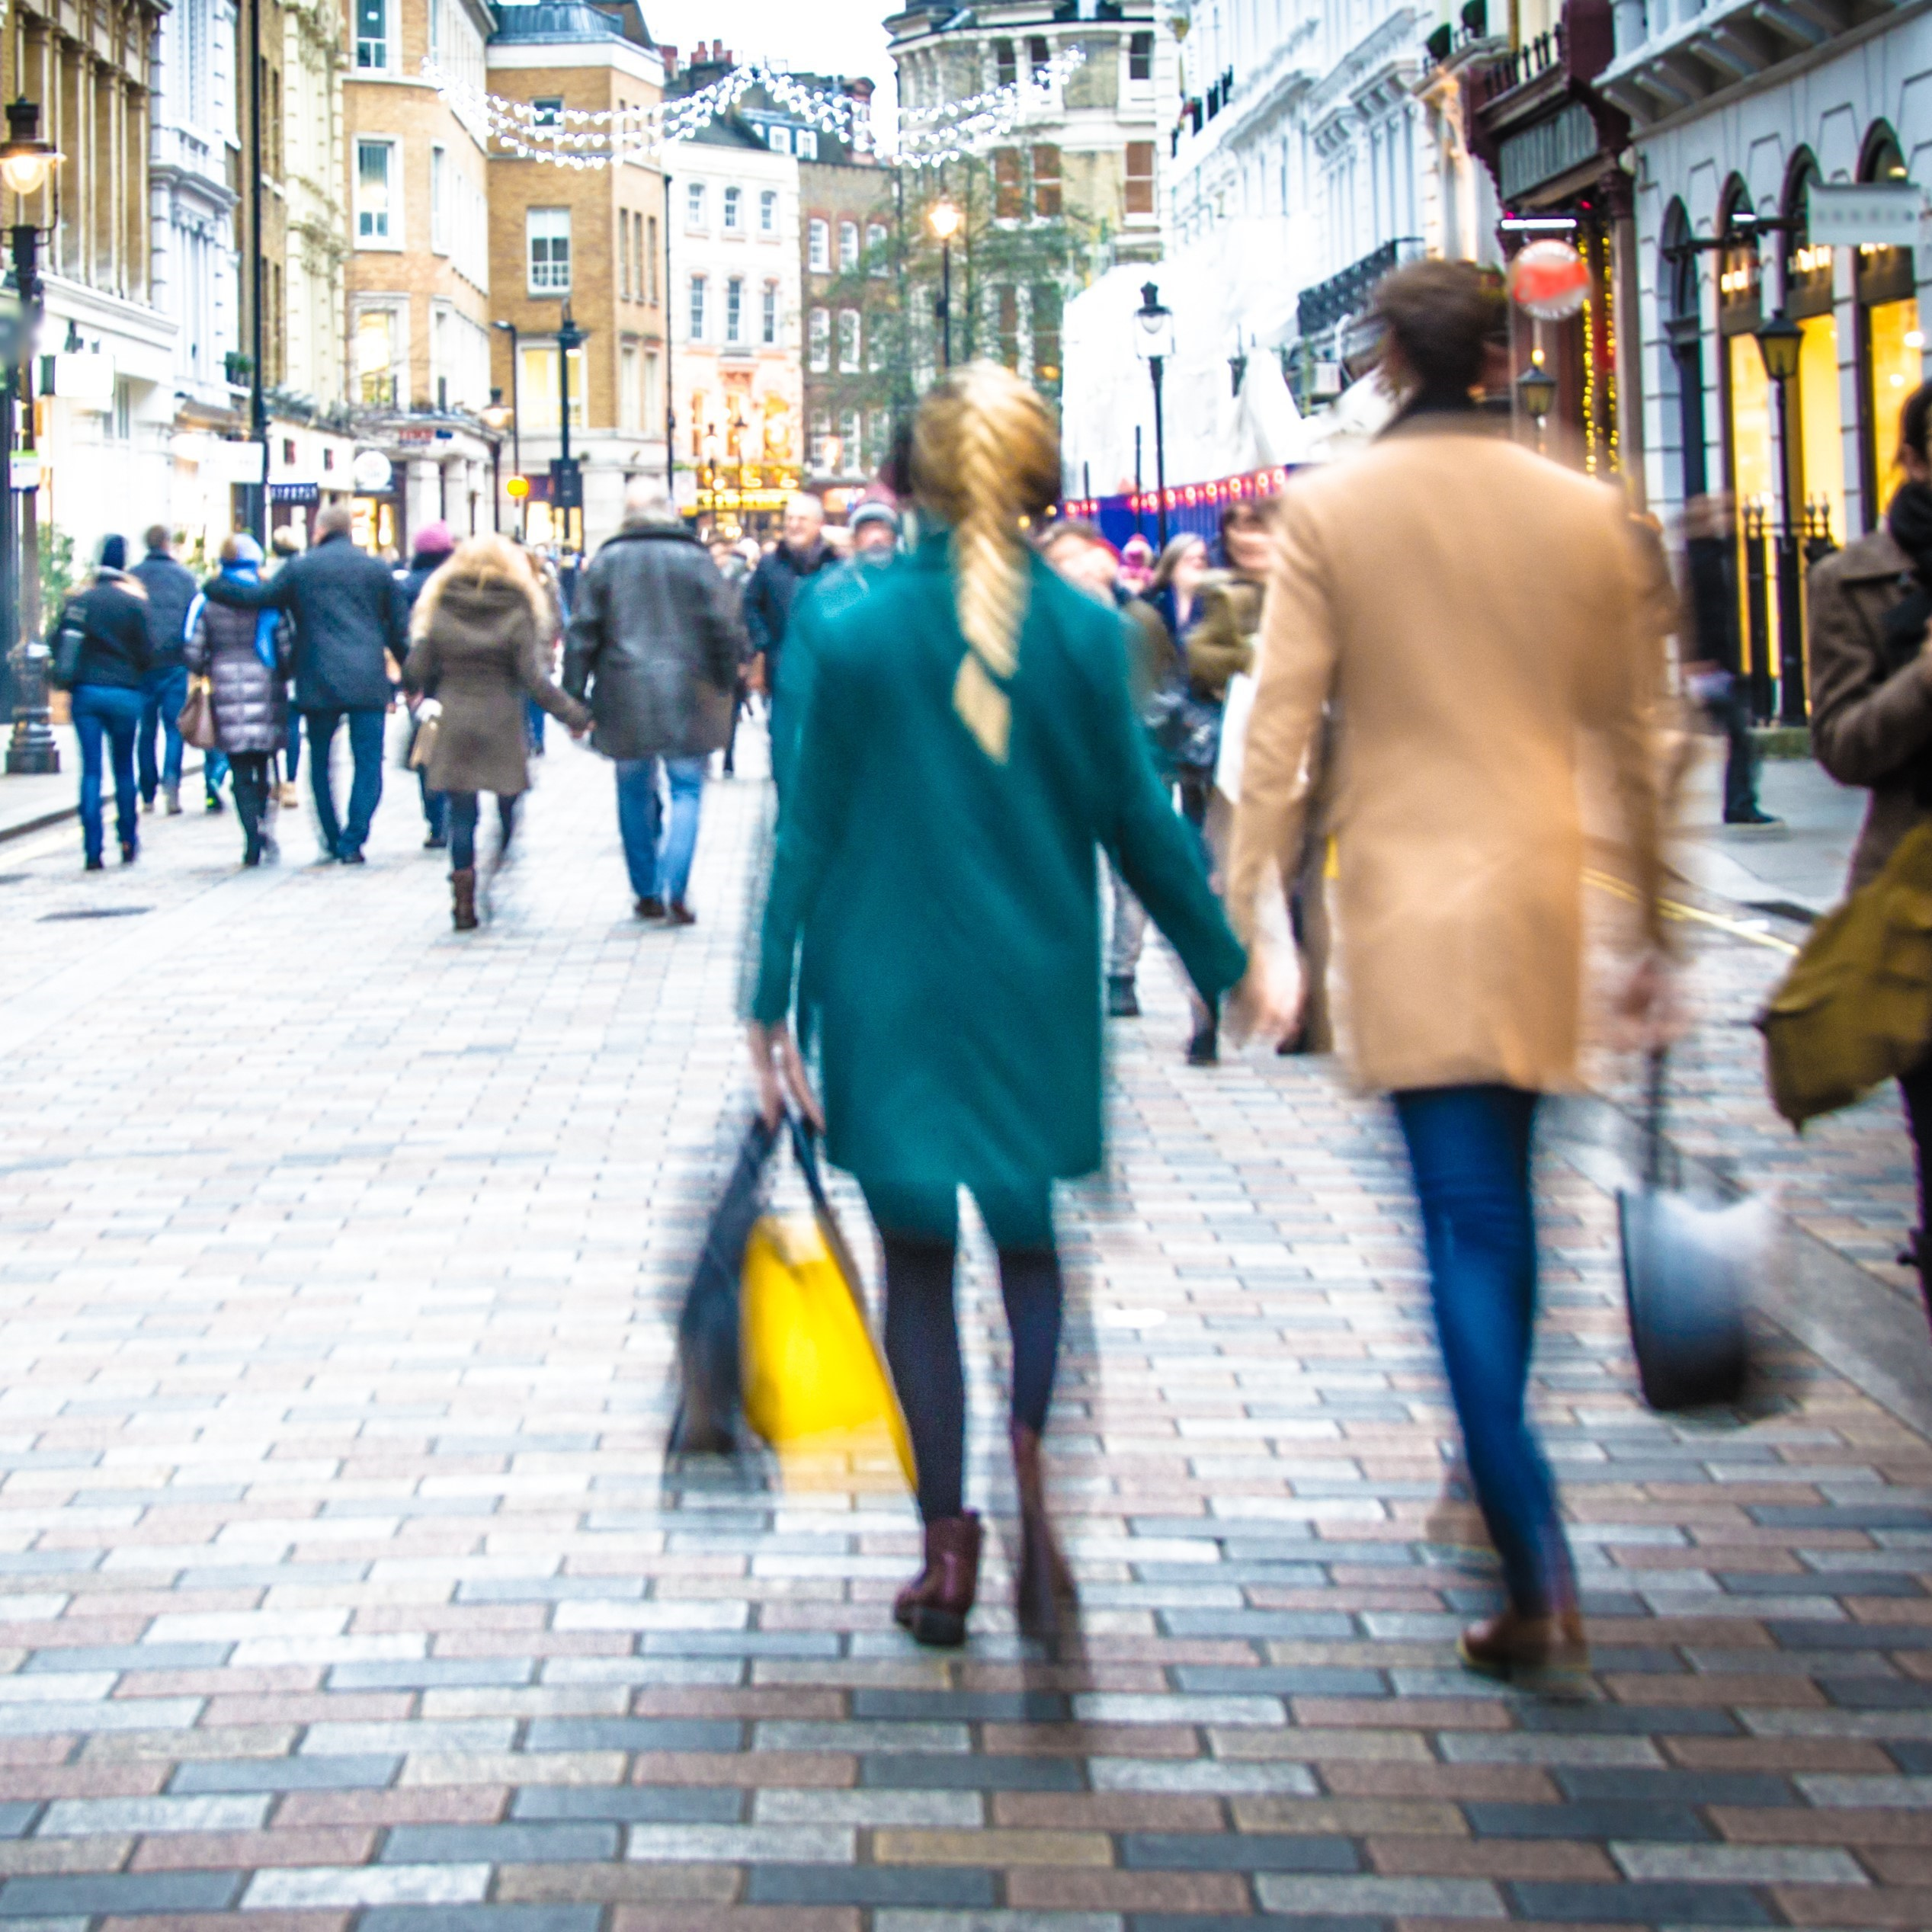 UK Retail Sector Faces Fight to Recover from Coronavirus Crisis - Prof. Adrian Palmer, Accounting Web